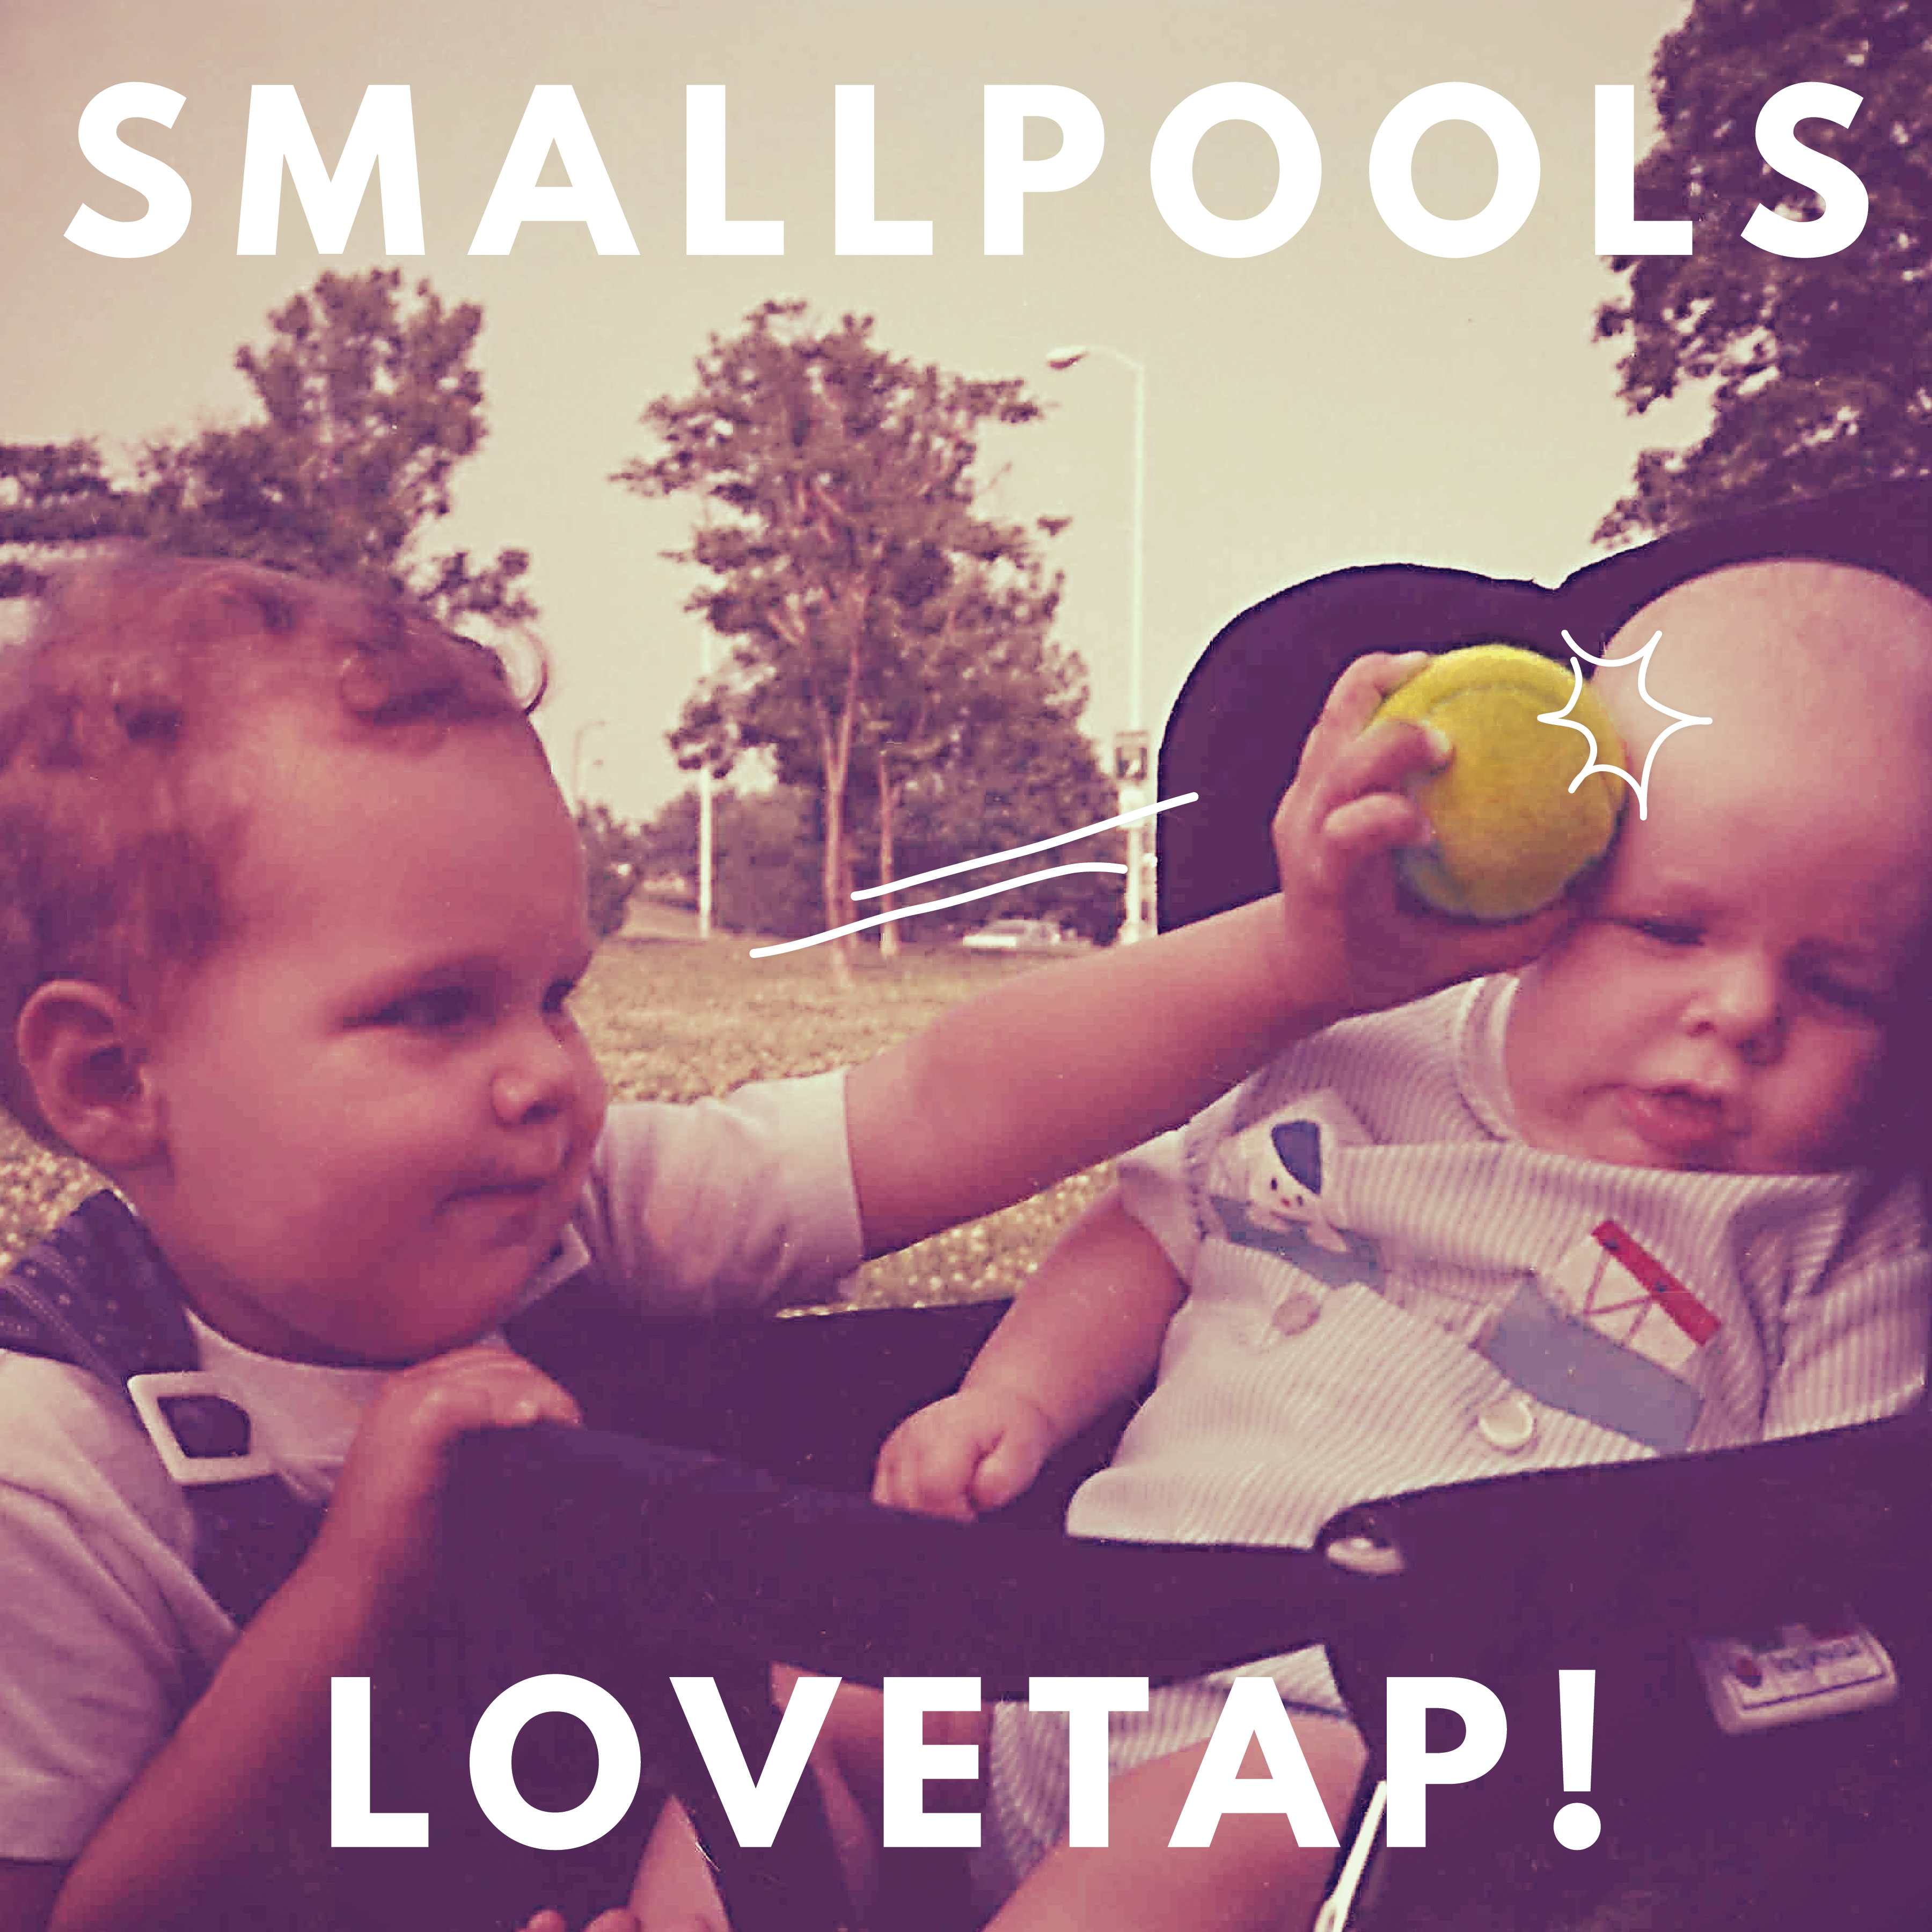 LOVETAP! - Smallpools